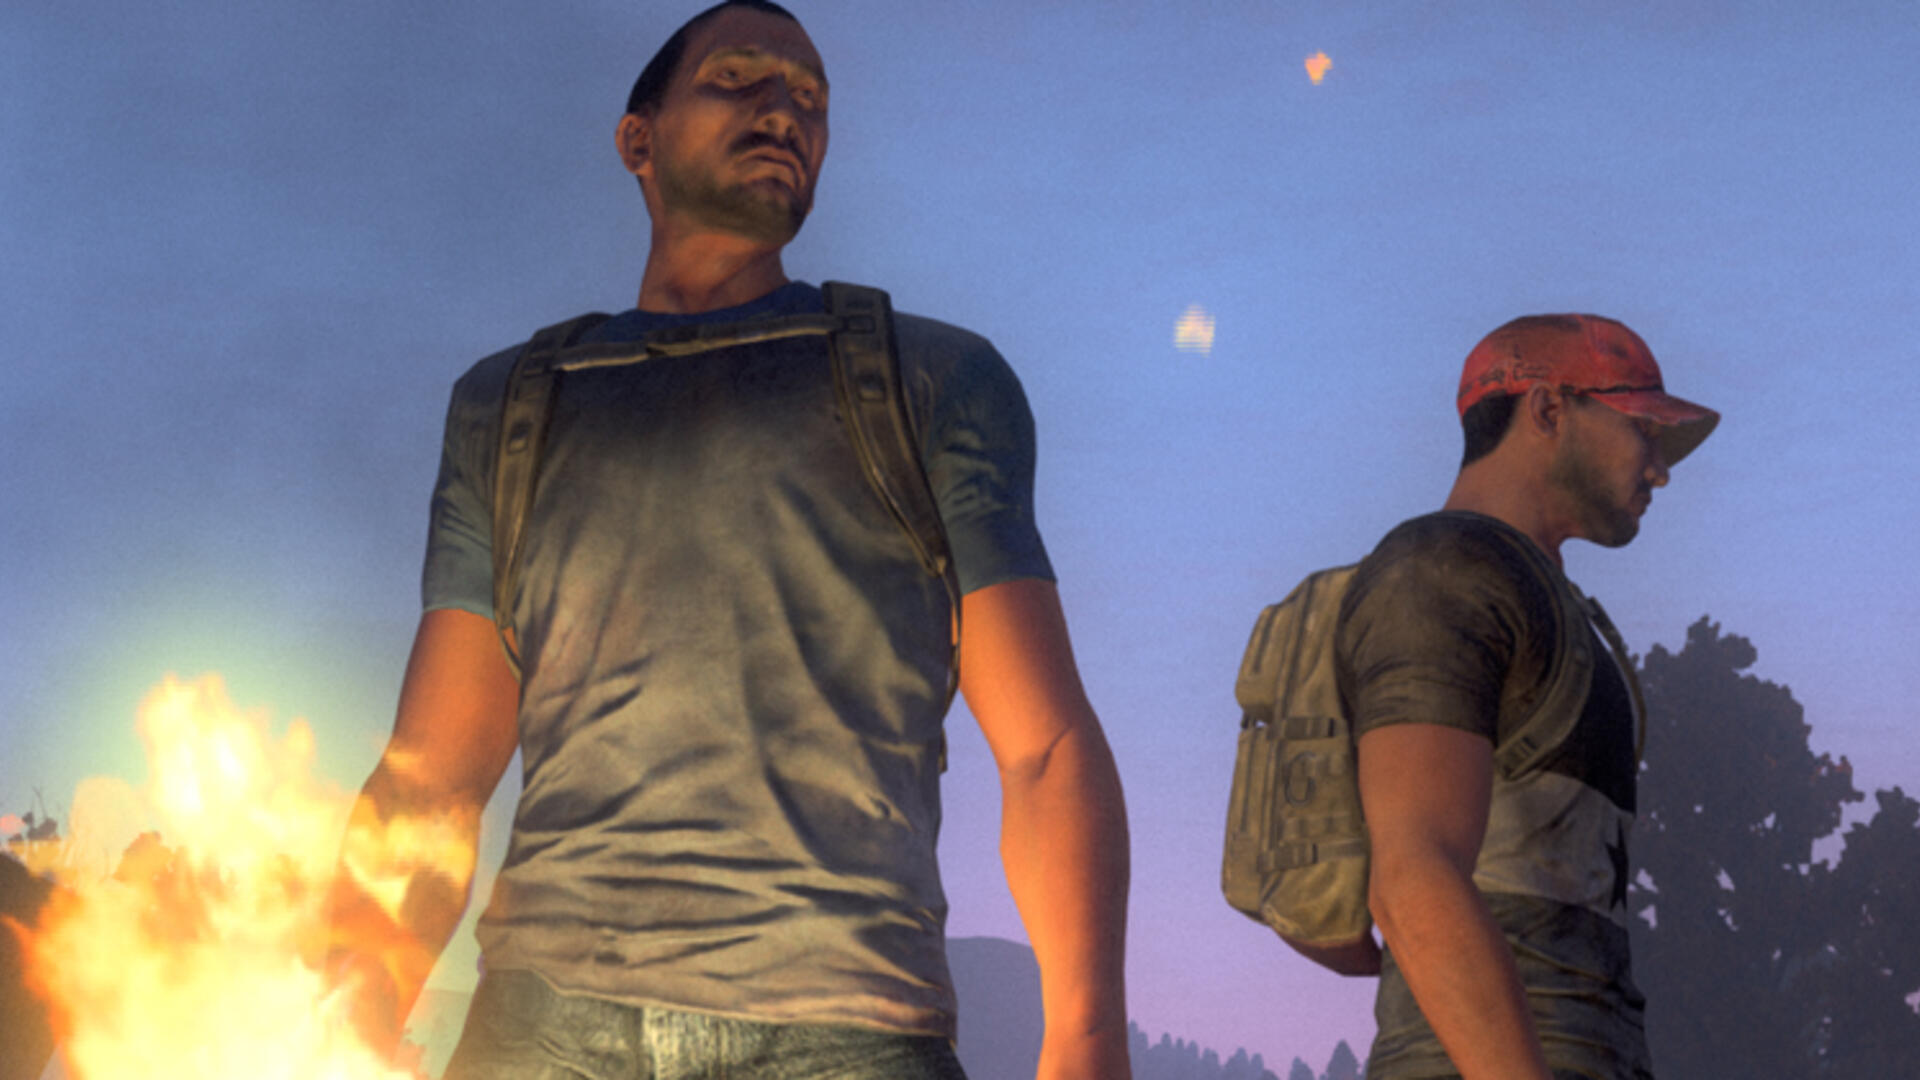 H1Z1 and the Growth of the Sandbox Survival Genre